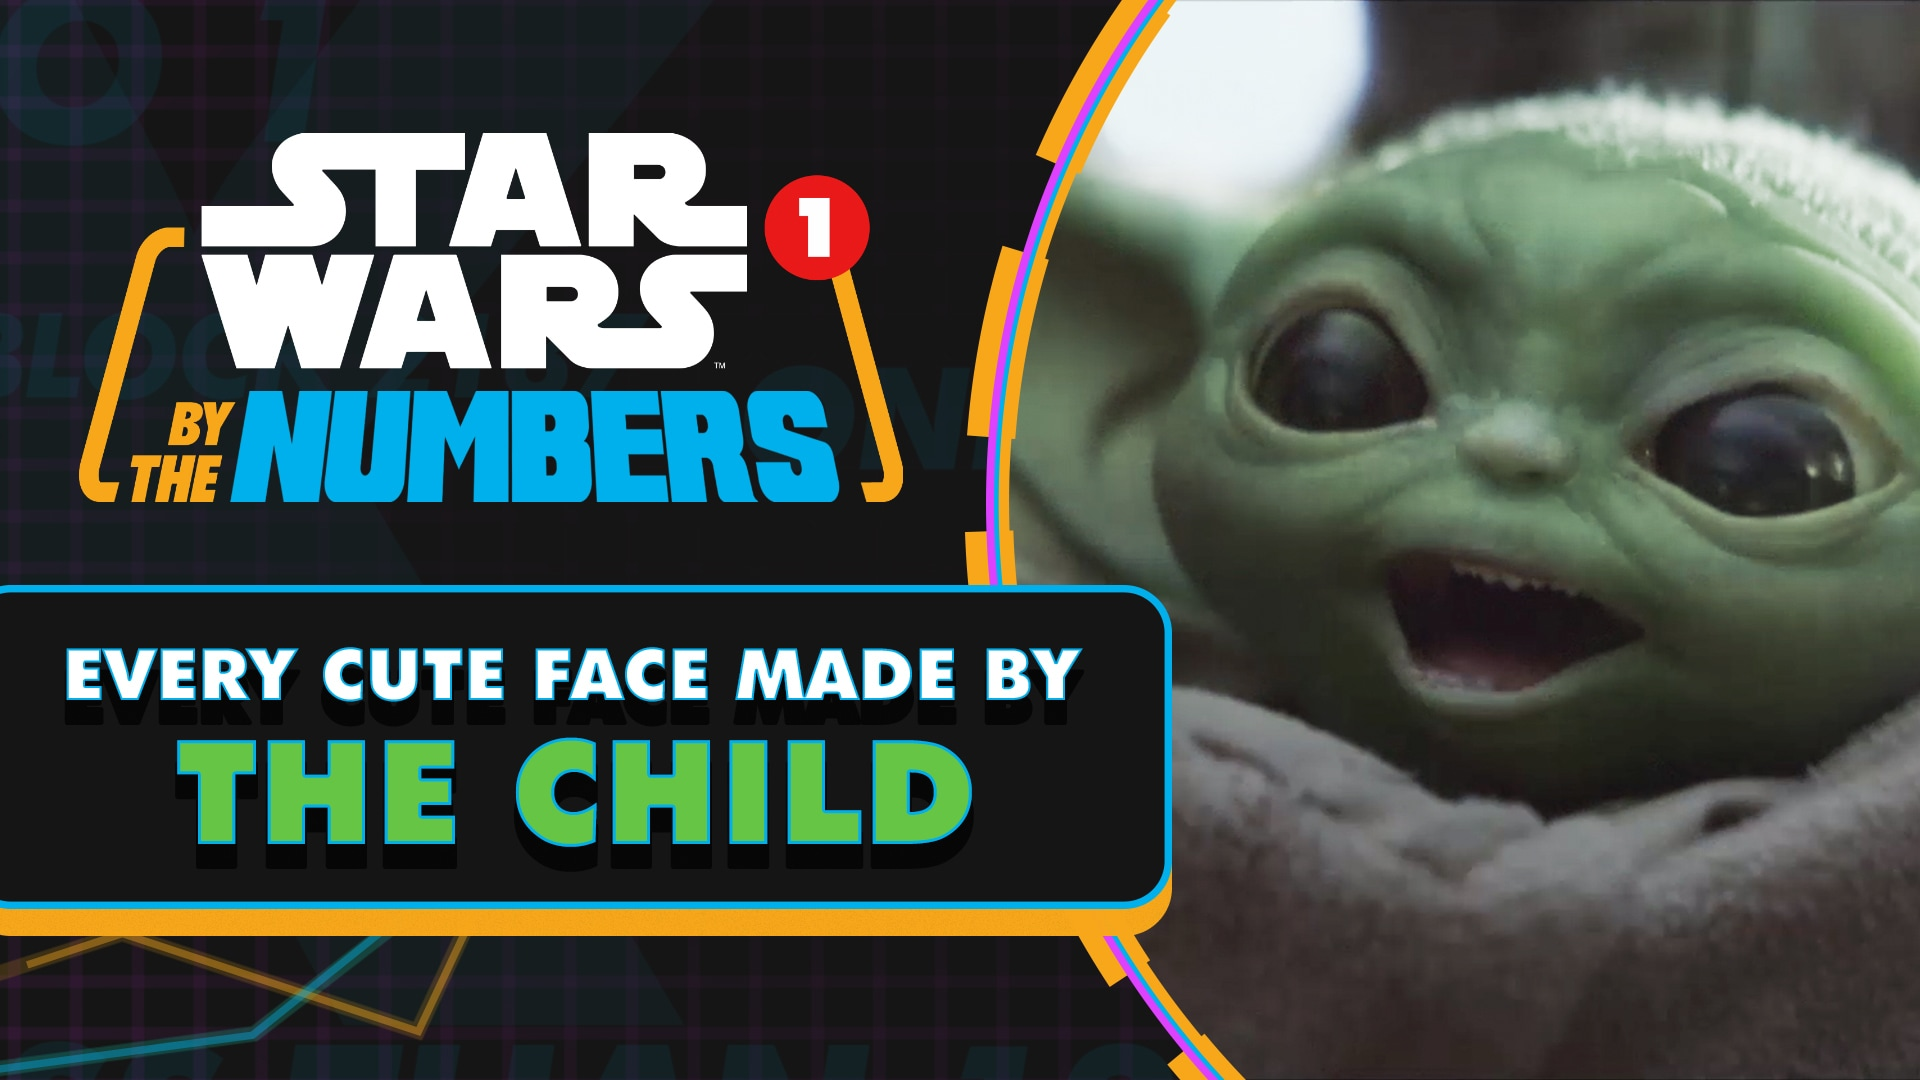 Every Cute Face Made By The Child | Star Wars By the Numbers